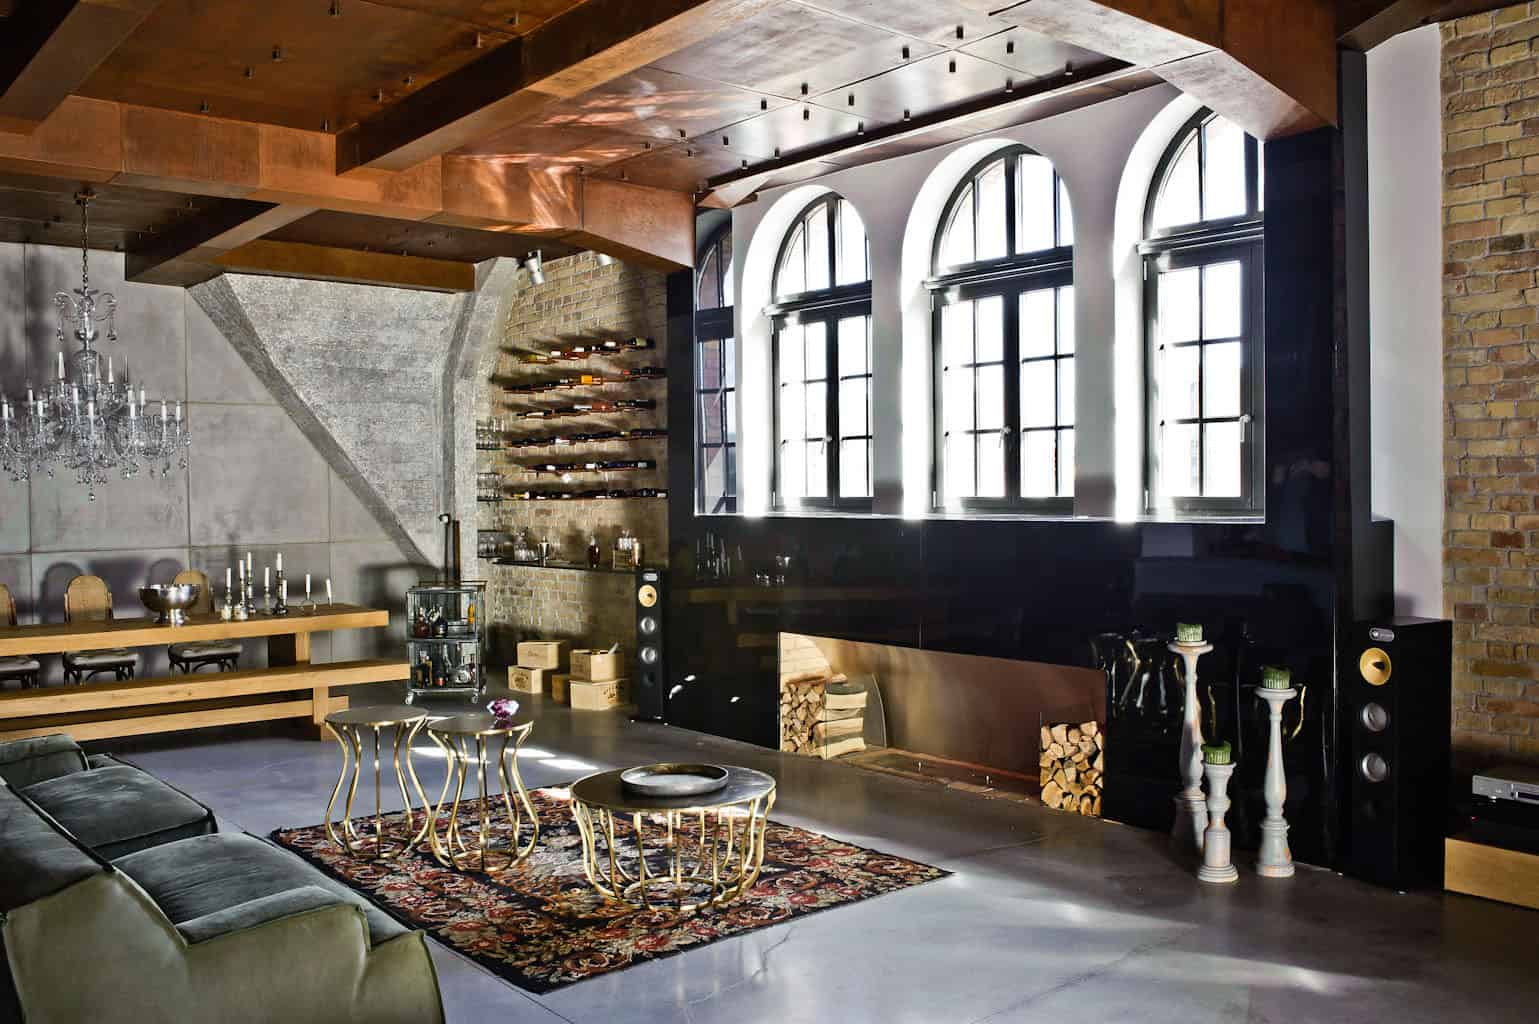 Camera Studio Per Ragazzi Interior Design : Eclectic loft apartment in budapest by shay sabag